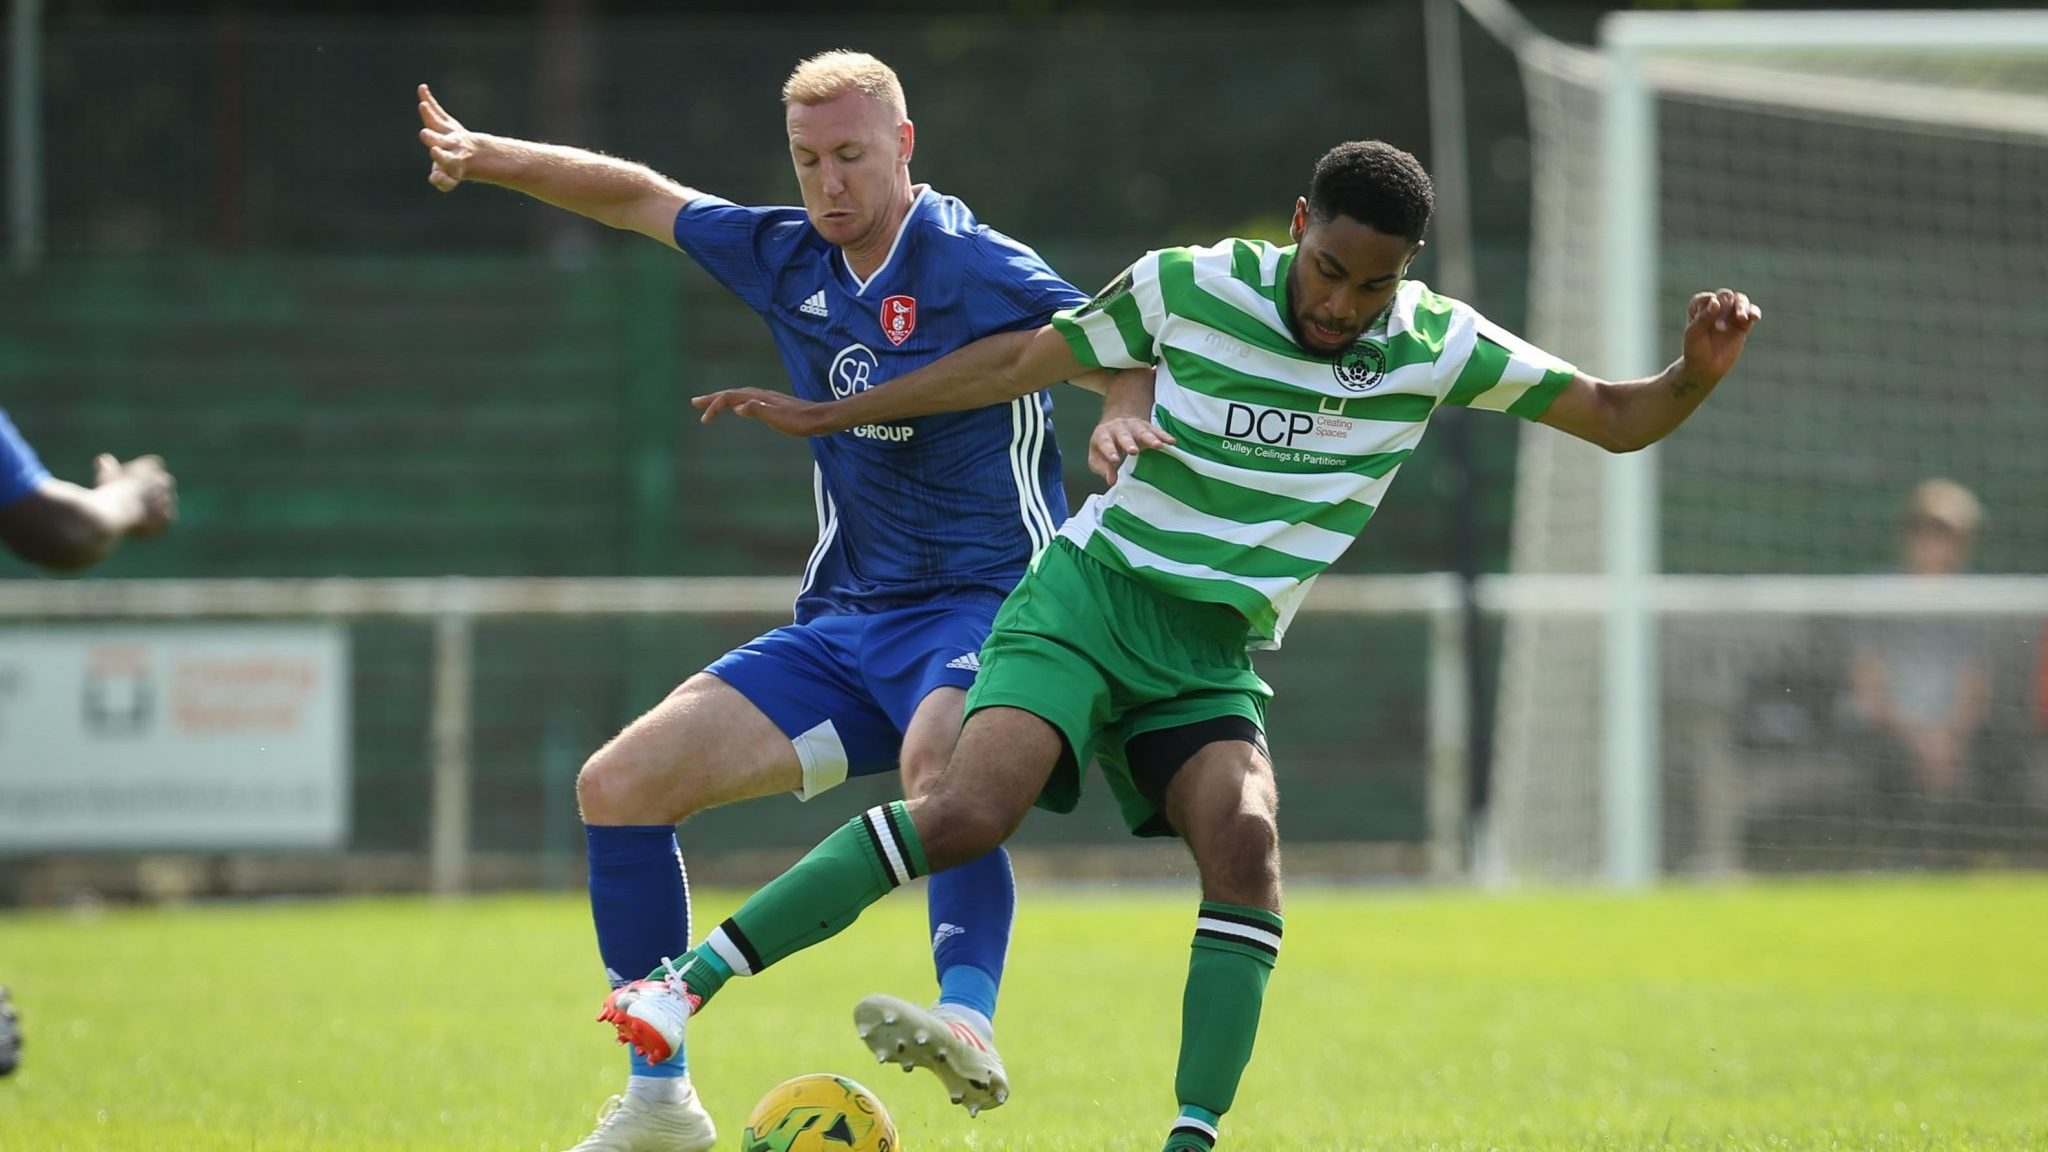 Opening day defeat for Bracknell Town at Chipstead